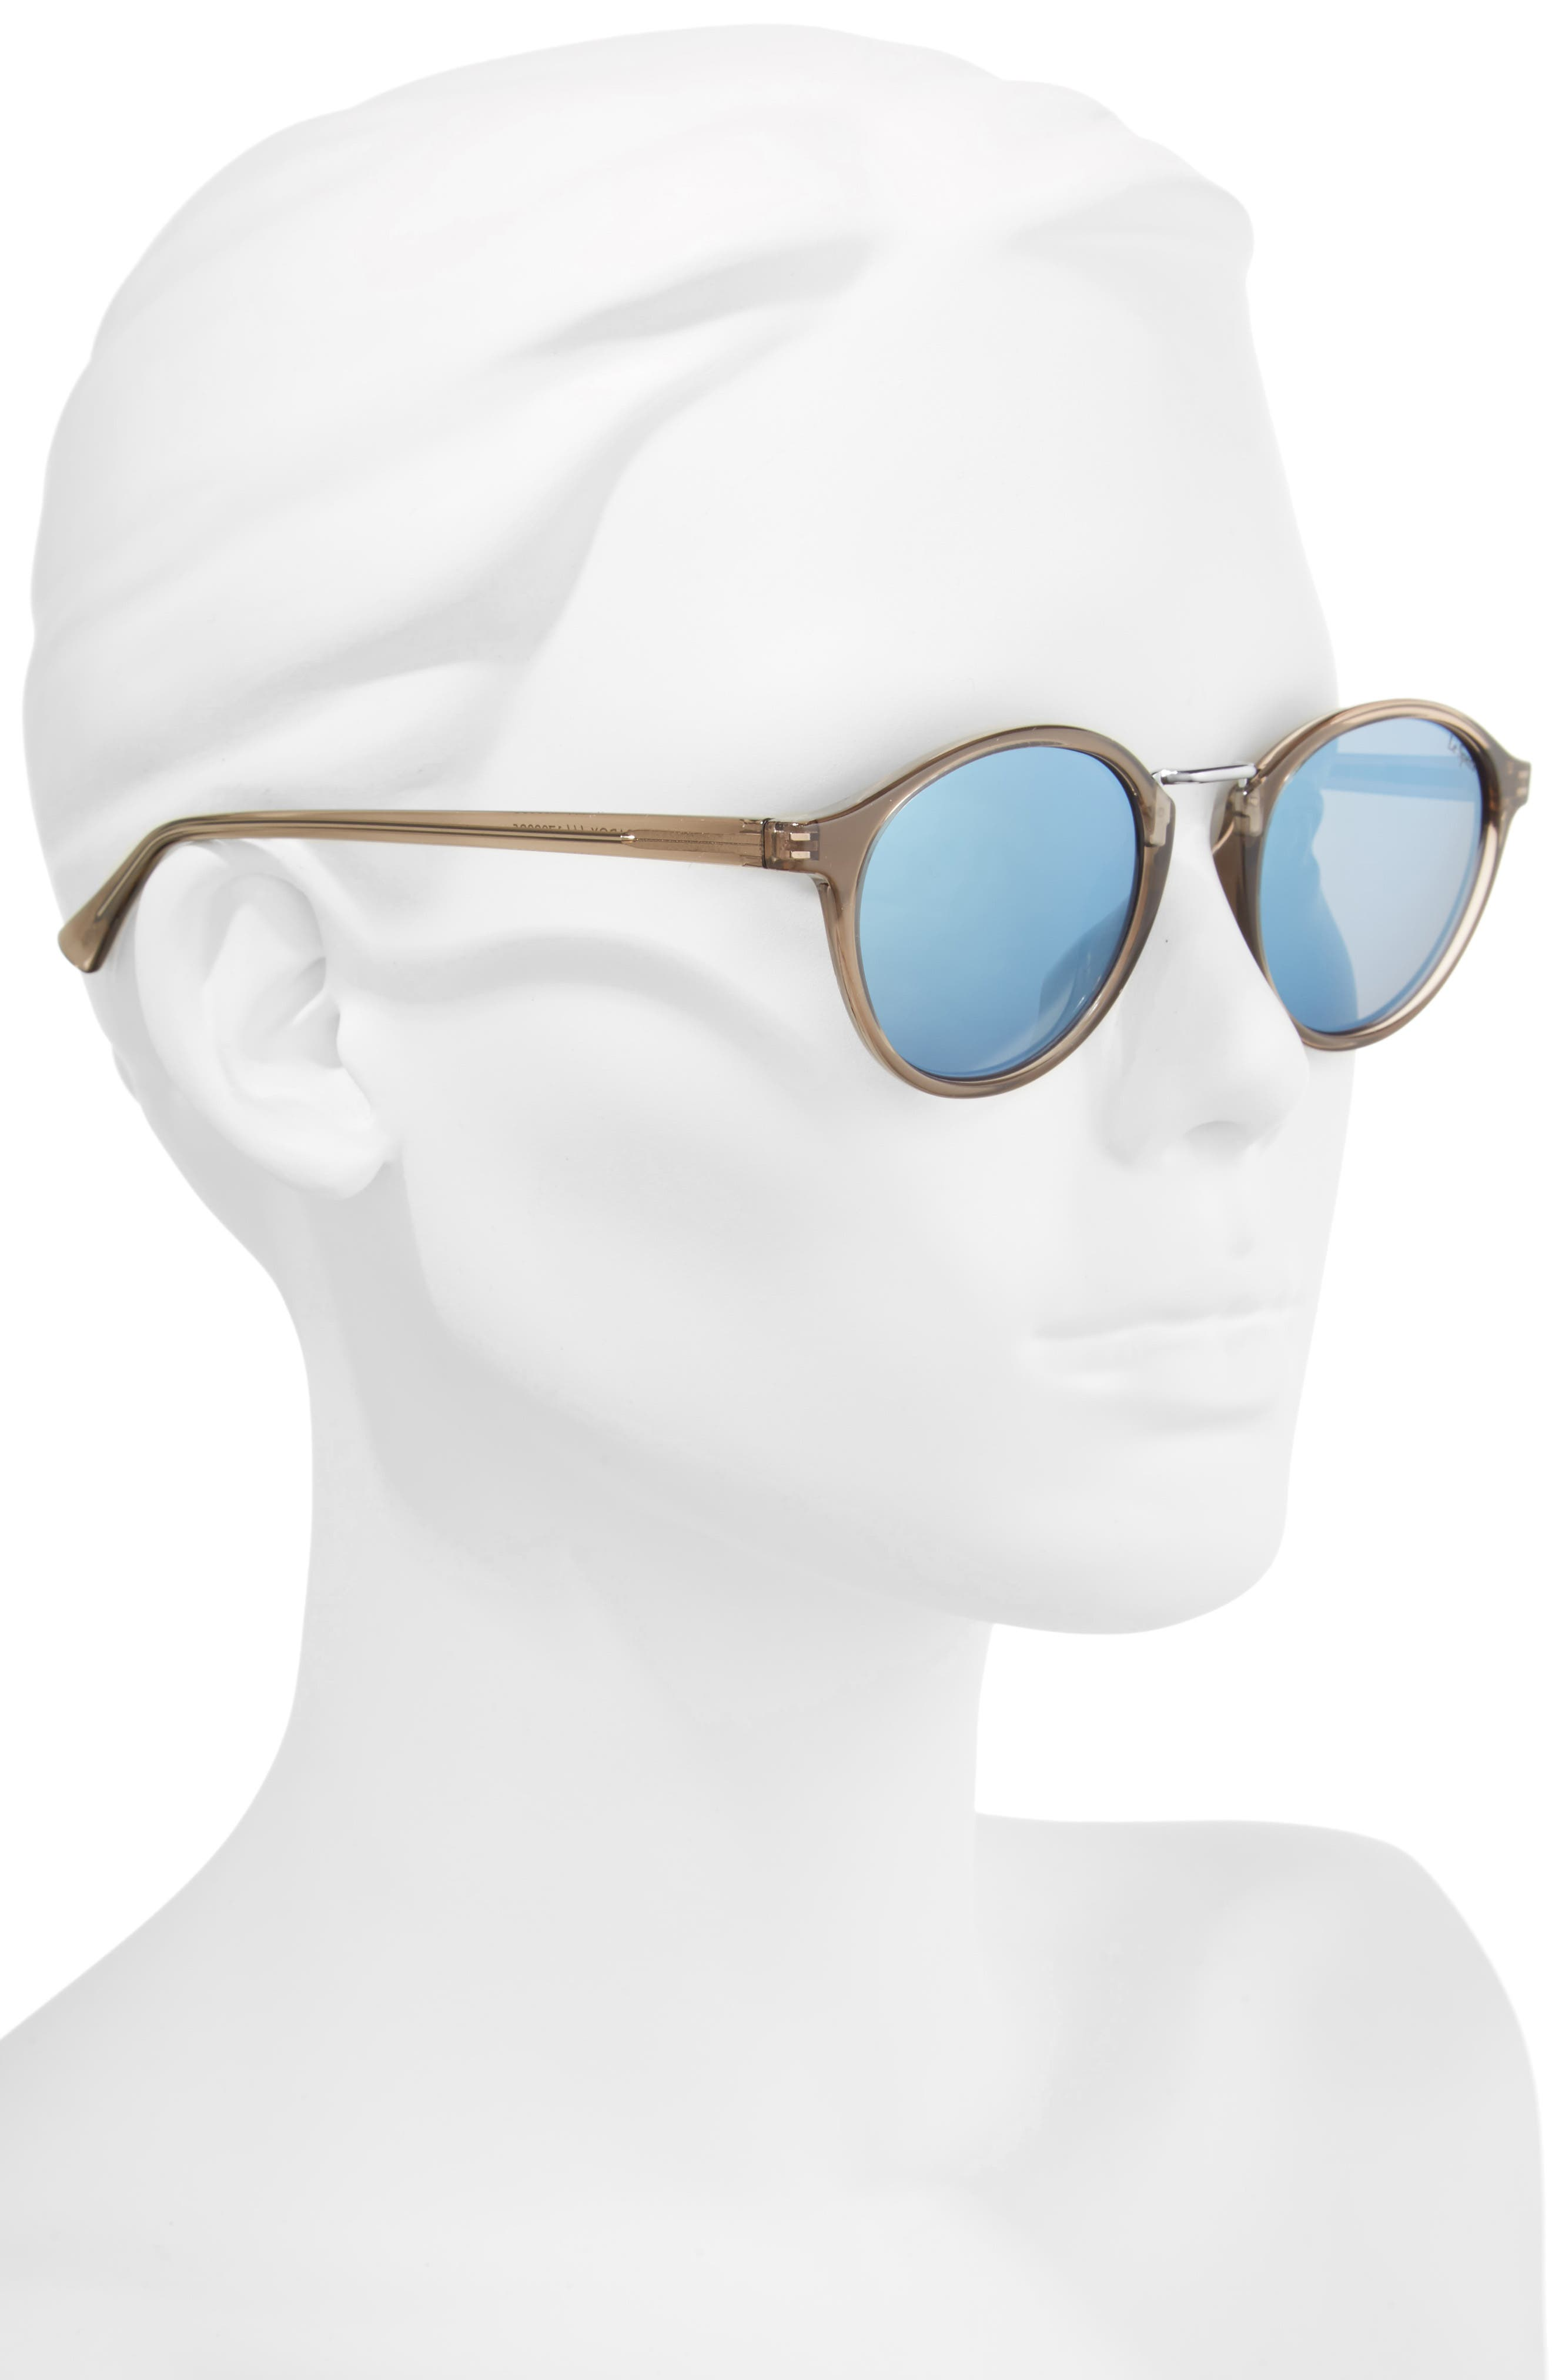 Paradox 49mm Oval Sunglasses,                             Alternate thumbnail 4, color,